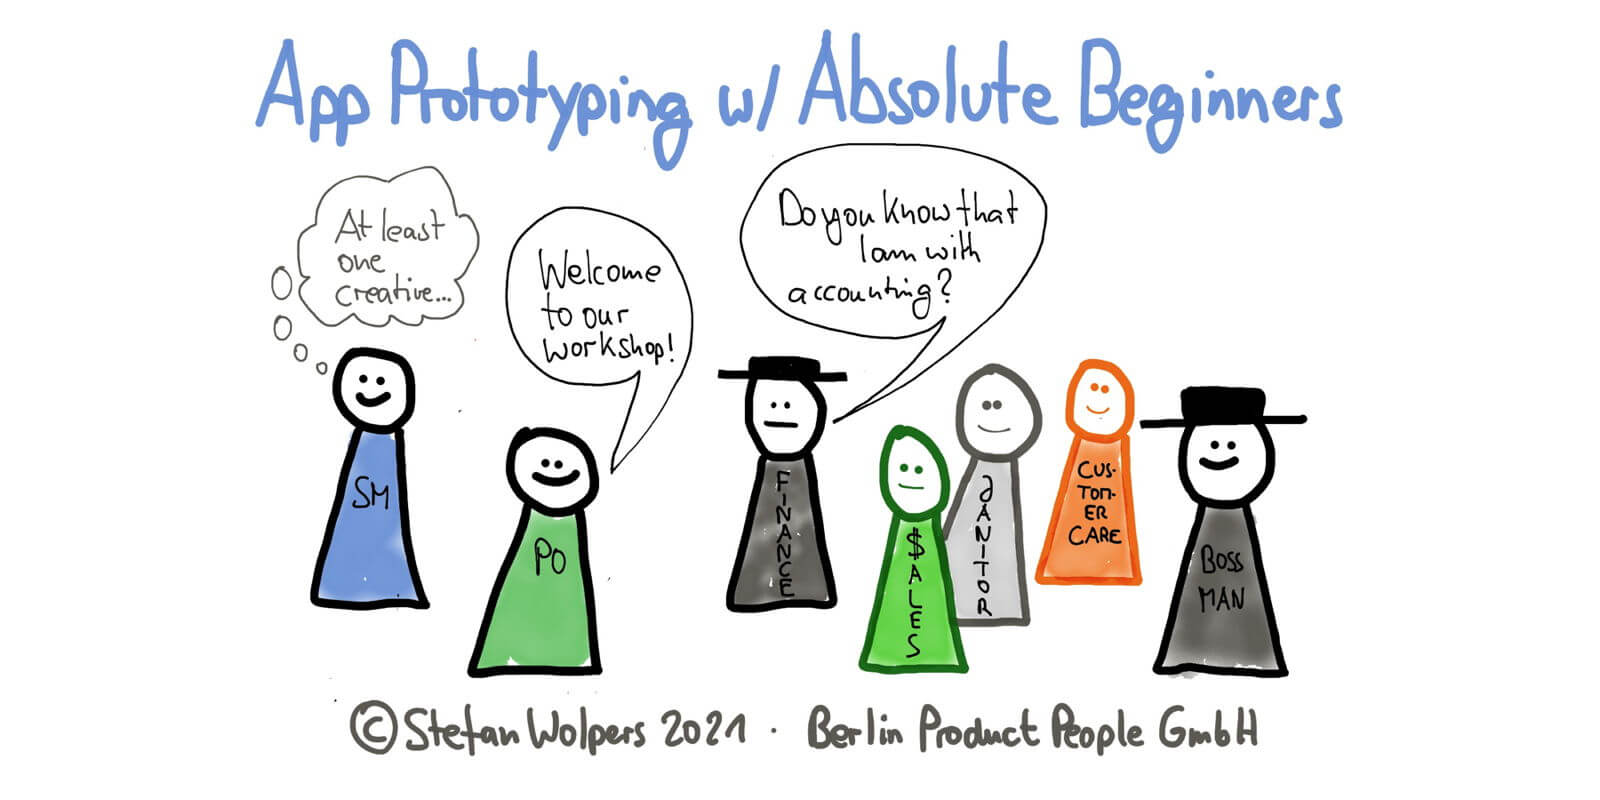 App Prototyping with Absolute Beginners – Creating an Understanding of How Empiricism Works among Stakeholders